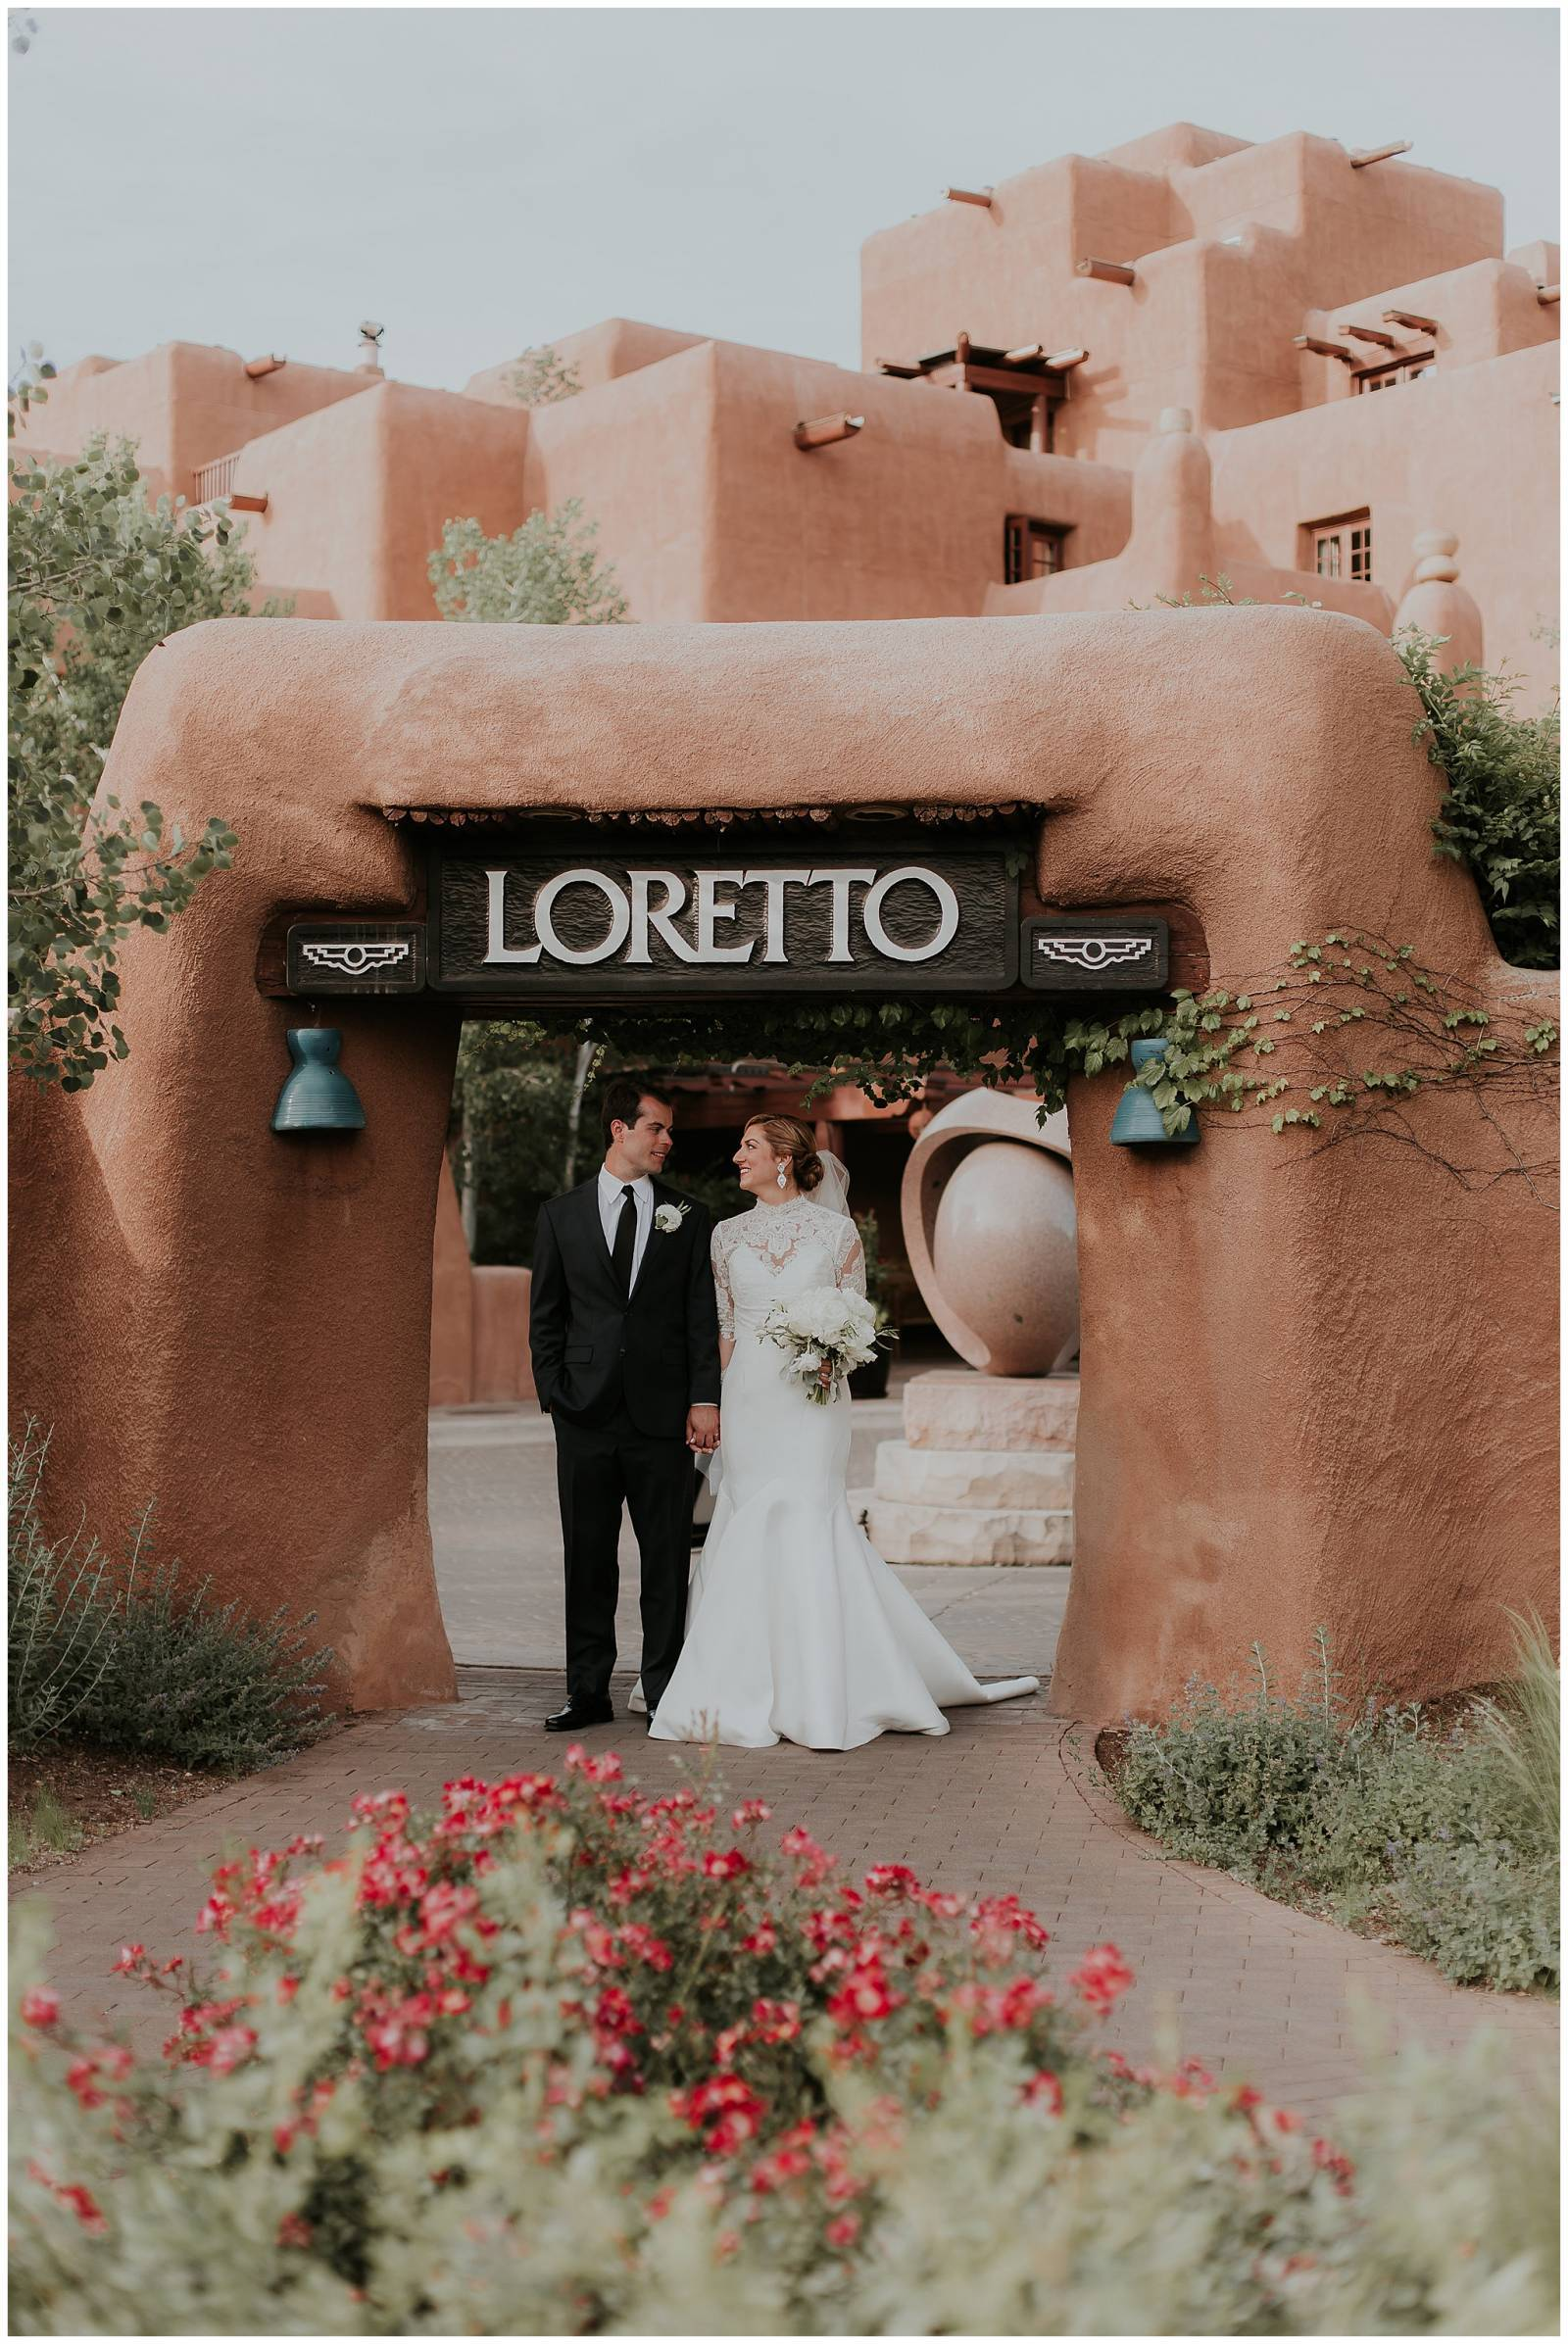 New Mexico inspired wedding at the Inn and Spa at Loretto